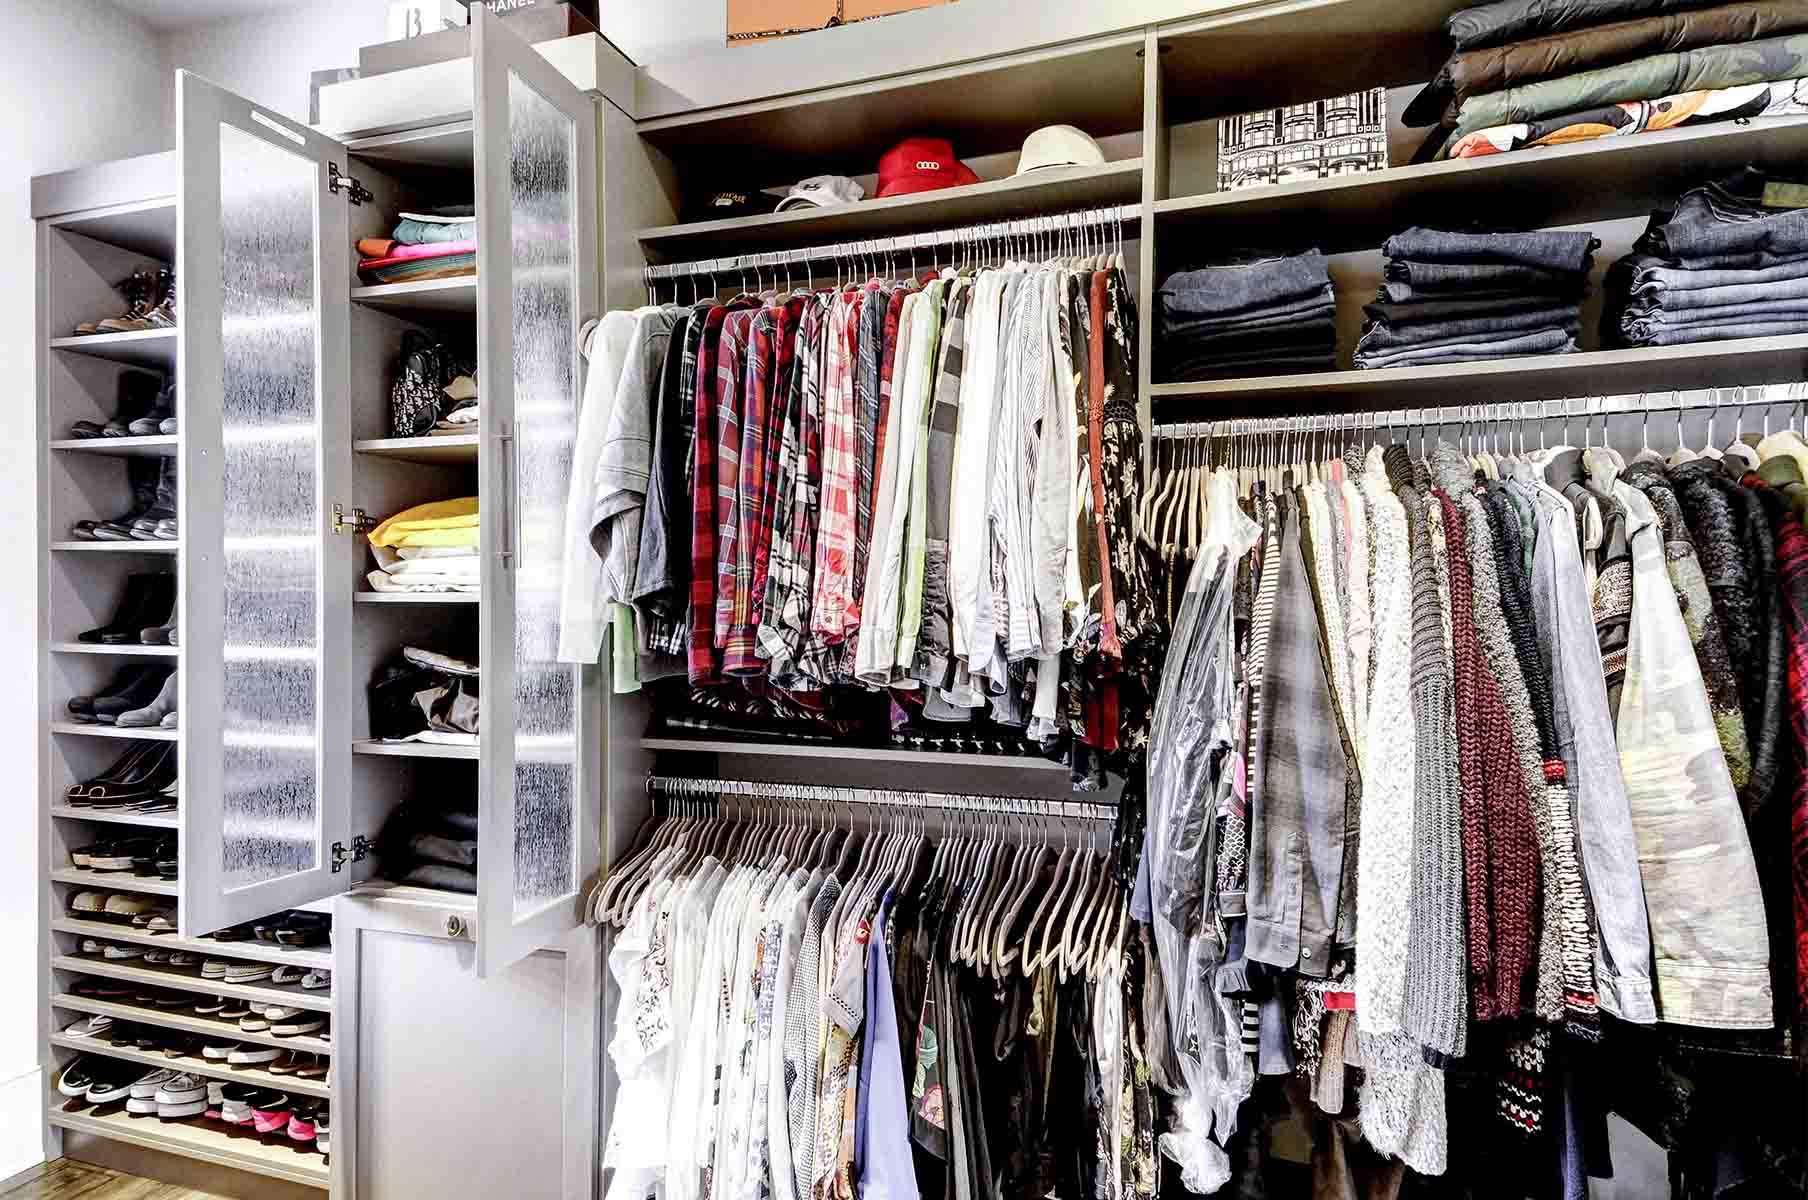 Clothing organized and tidy